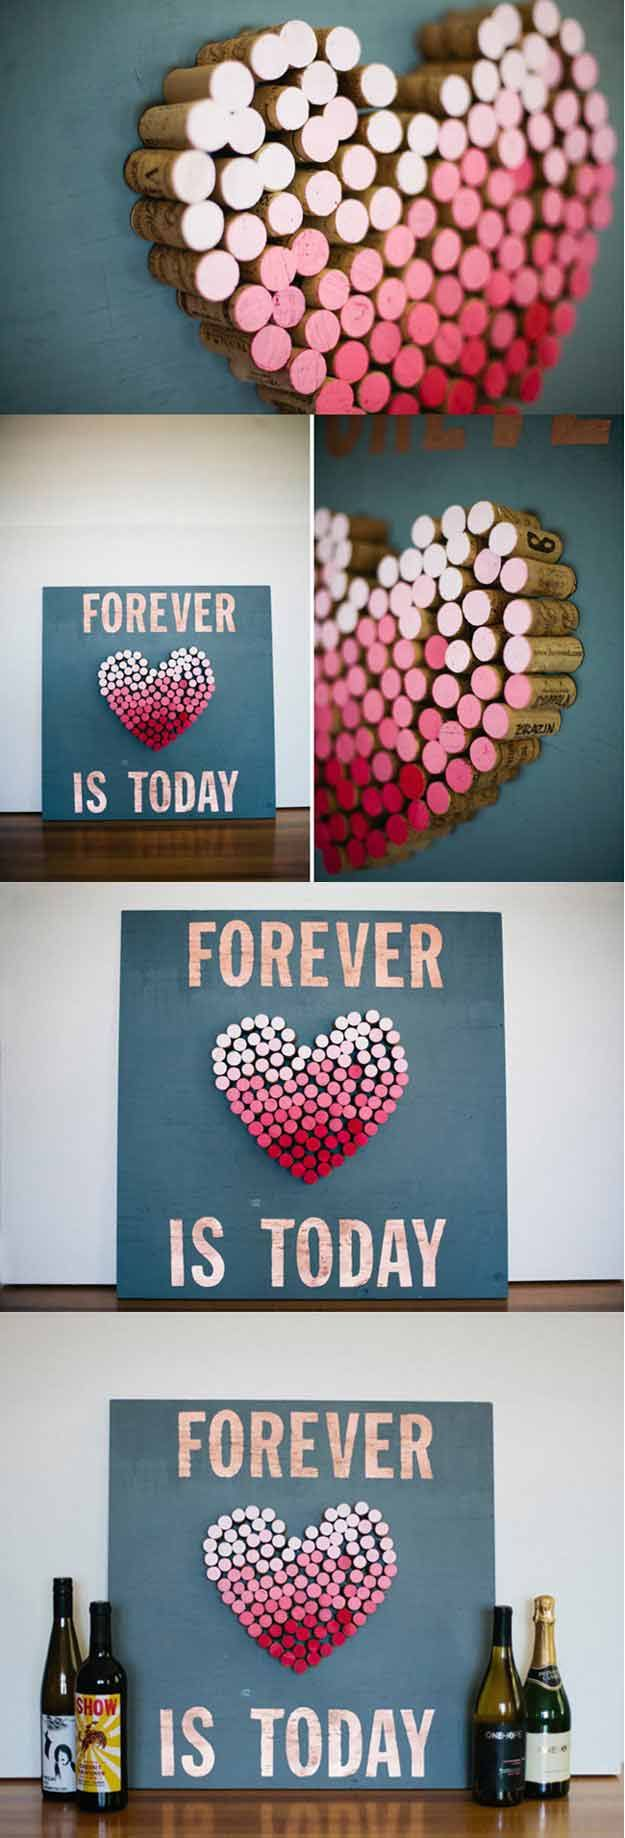 best ideas about cool gifts for teens diy for diy ombre cork art 26 cool diy projects for teens bedroom